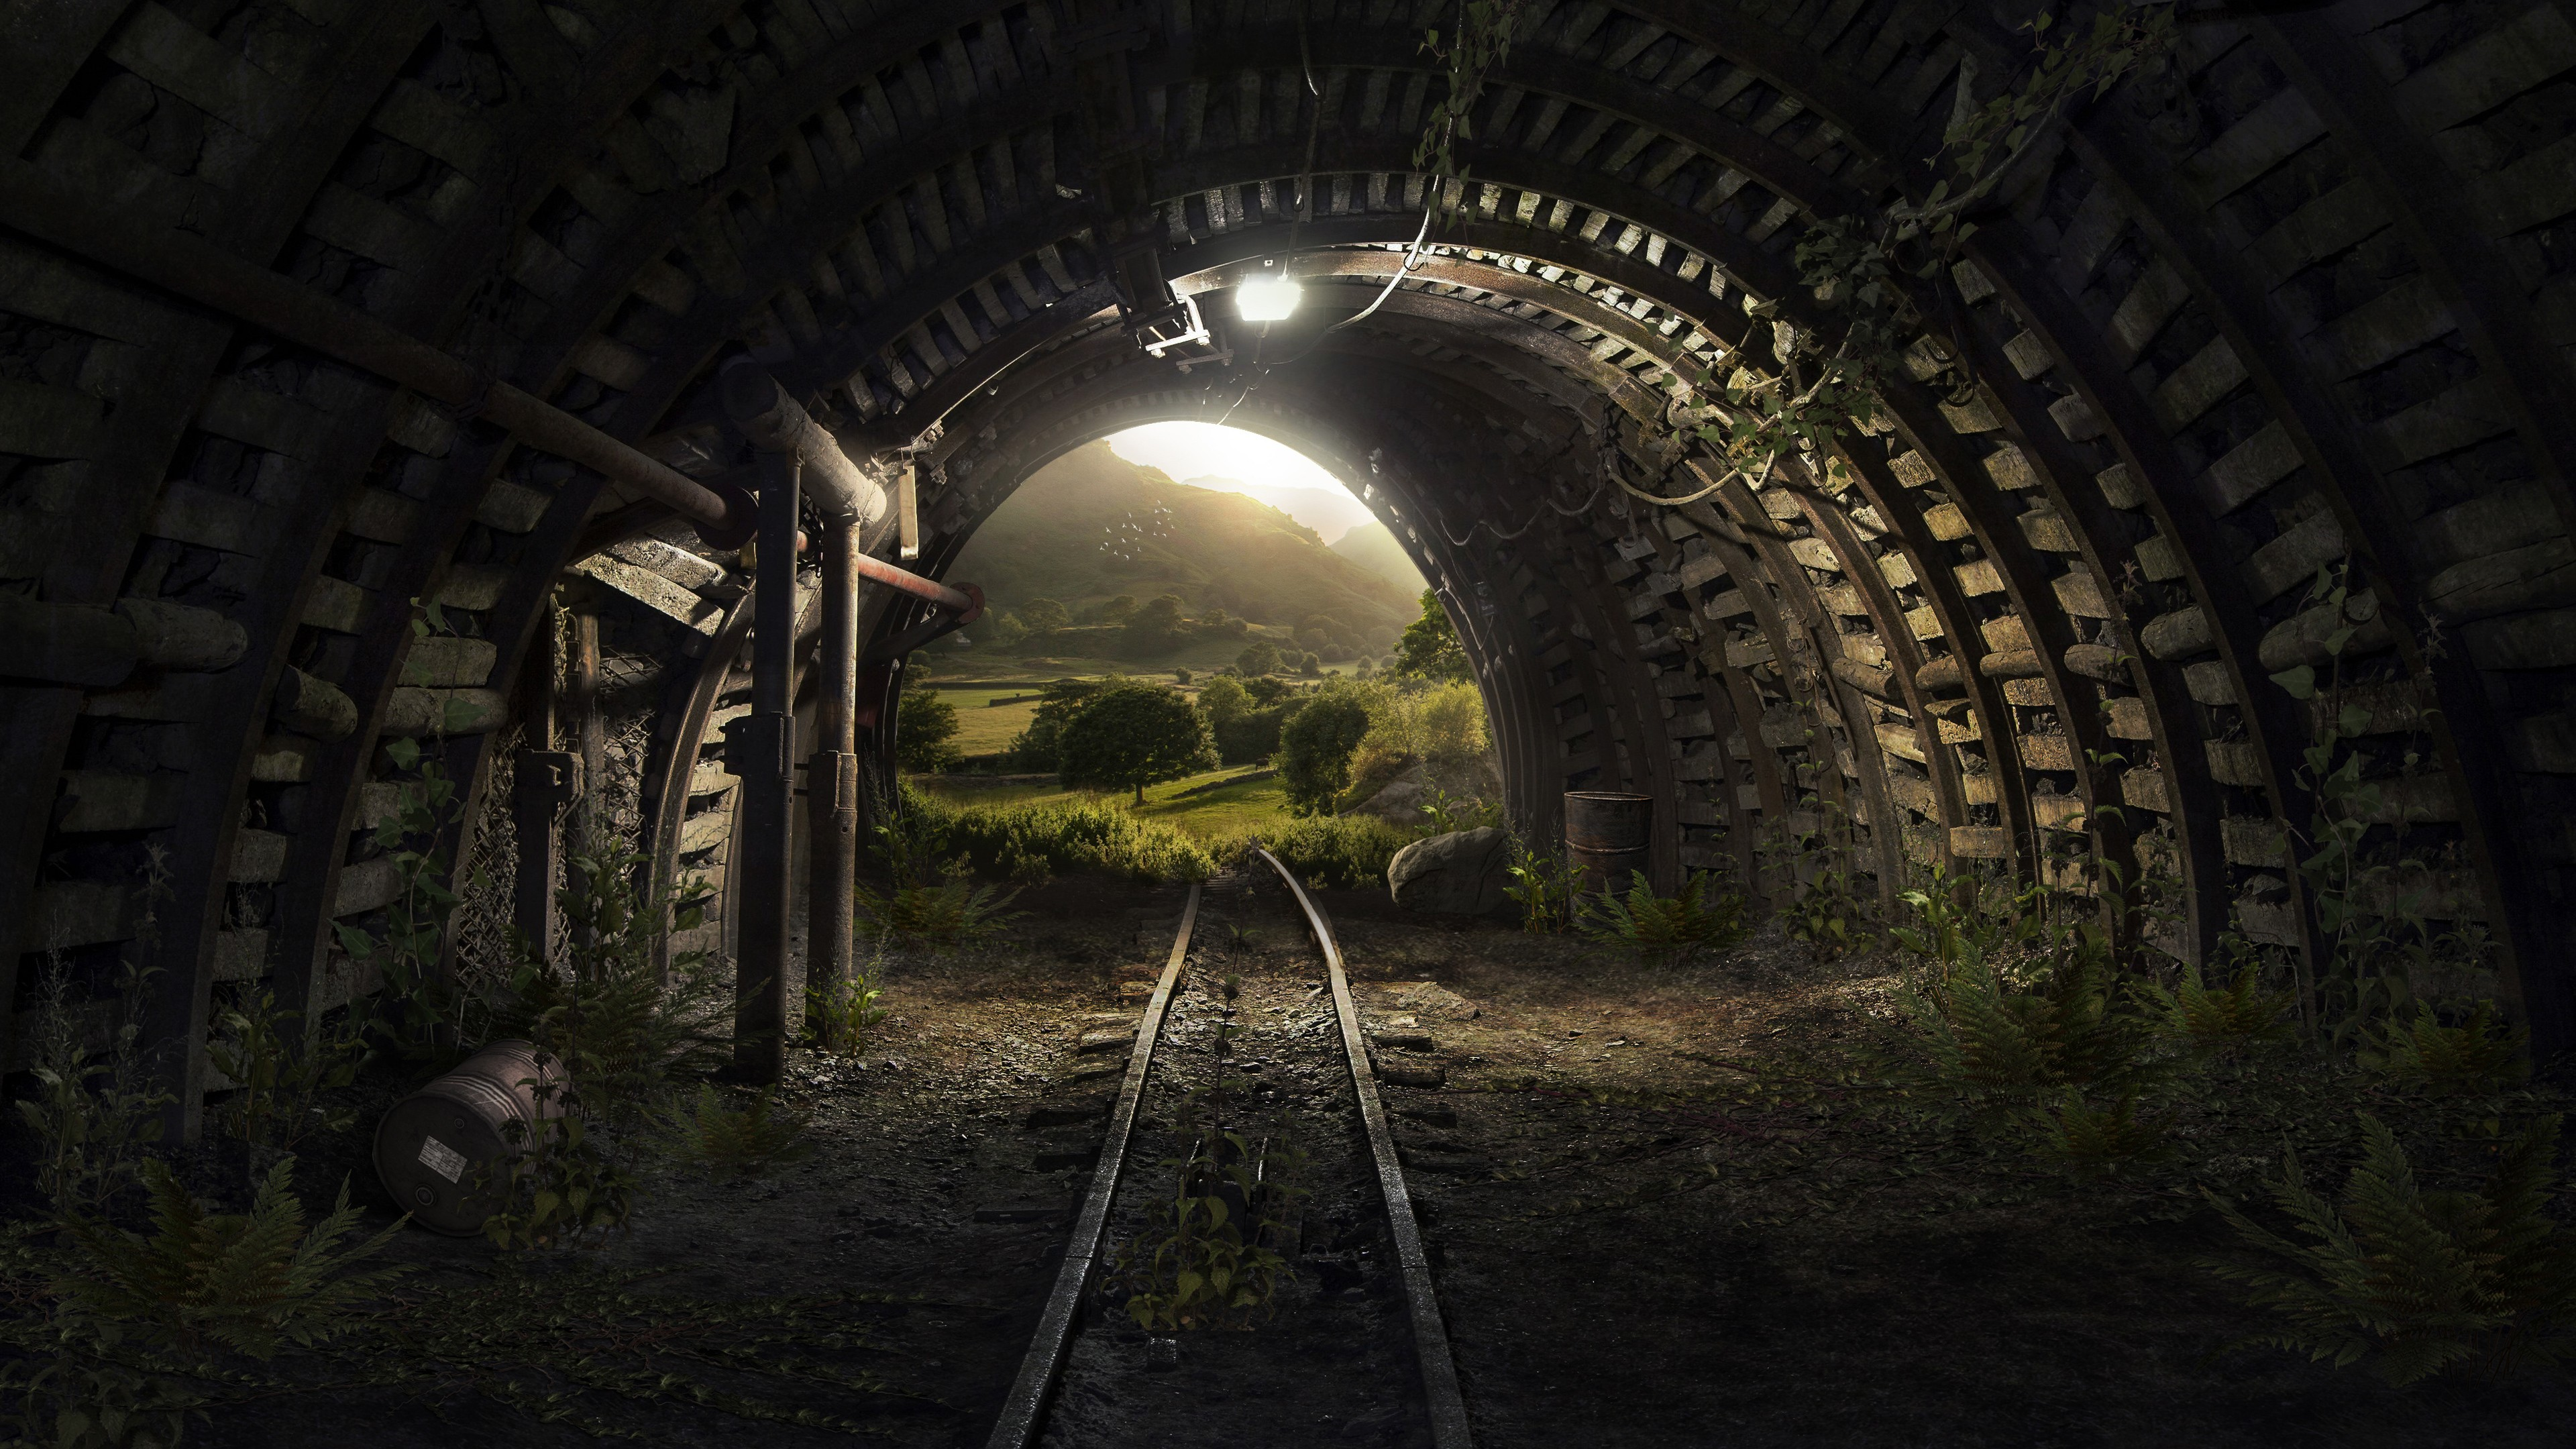 High Contrast Wallpaper For Iphone X Tunnel Tracks 4k Wallpapers Hd Wallpapers Id 22596